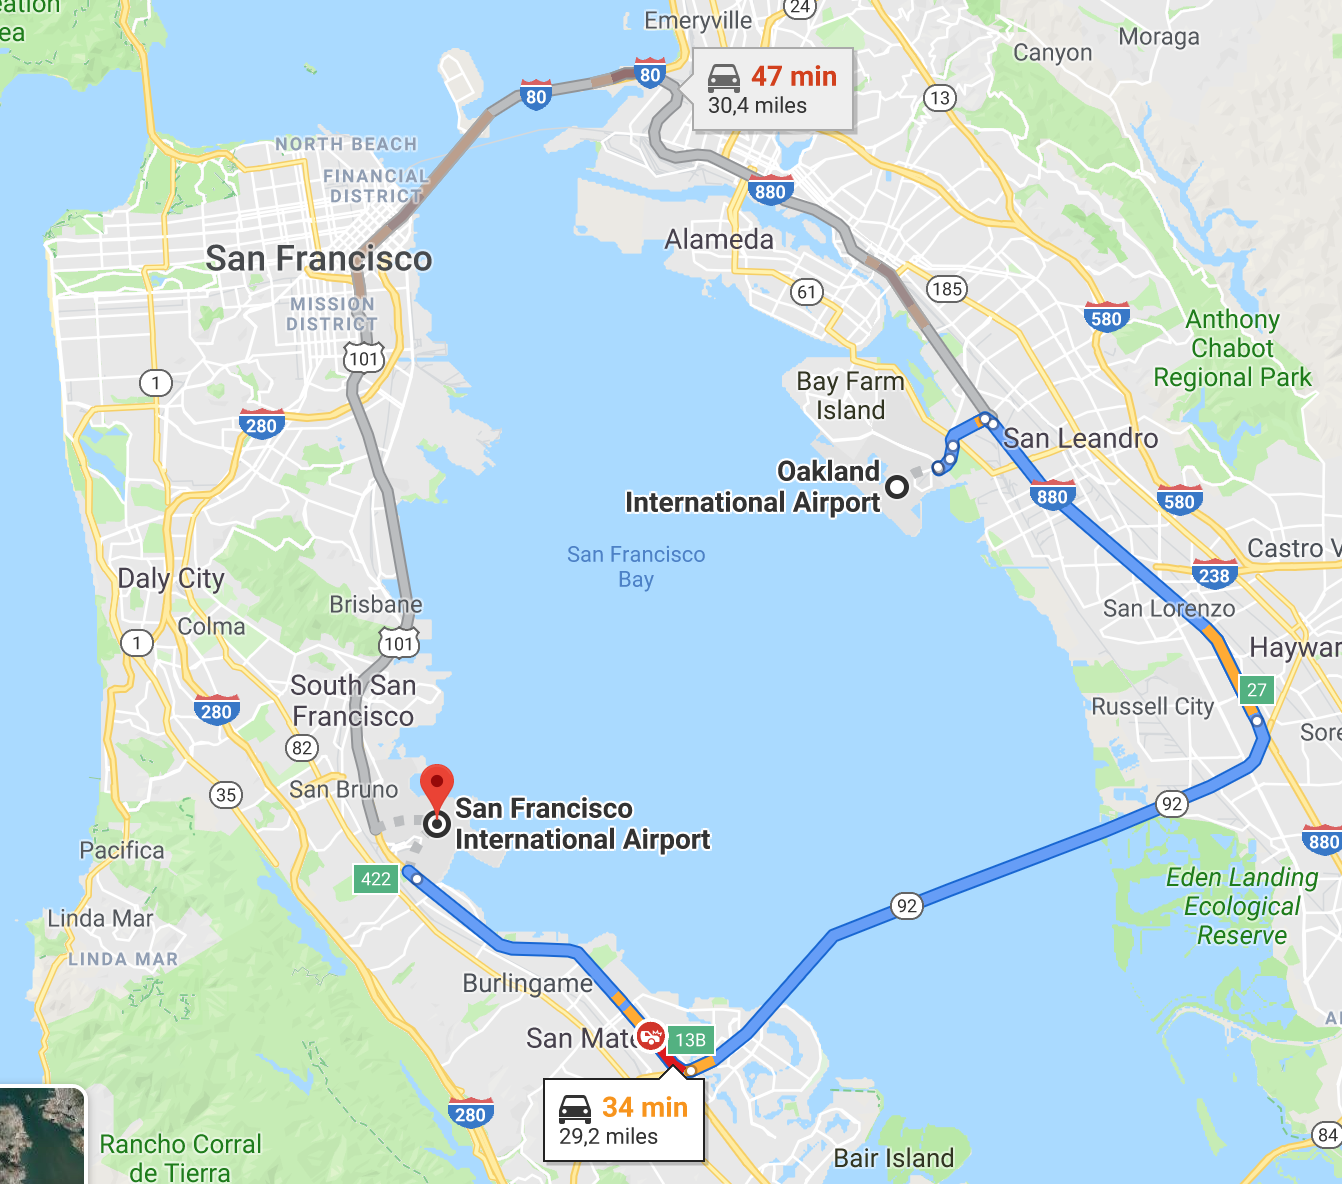 Fig. 8: Google Maps screen-shot showing the proximity between San Francisco and Oakland airports.